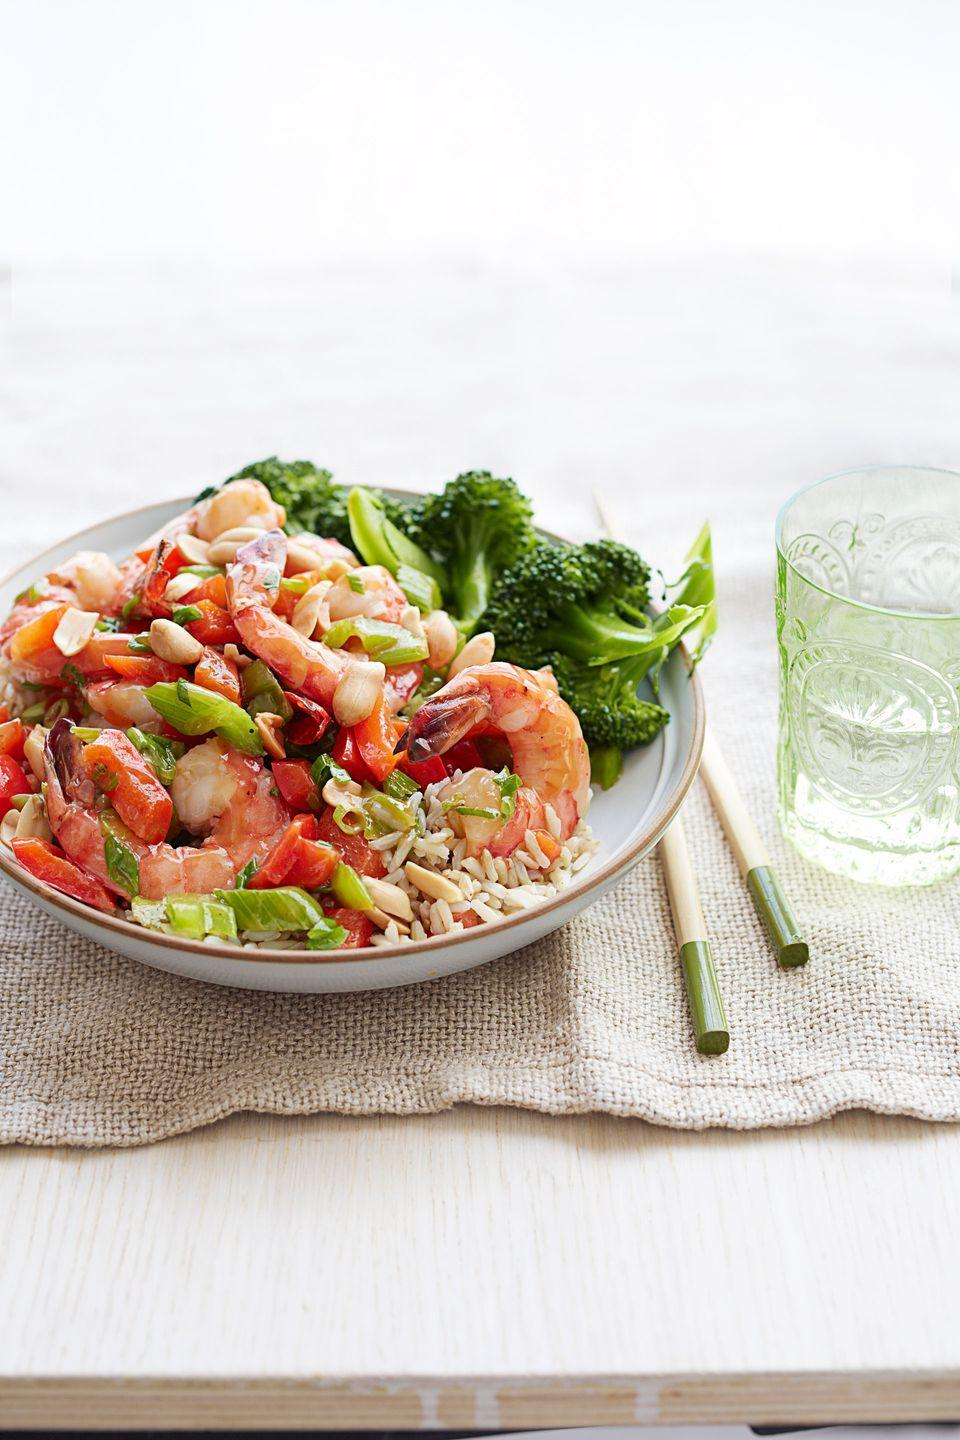 "<p>You won't believe this is actually super healthy.</p><p>Get the recipe from <a href=""https://www.delish.com/cooking/recipe-ideas/recipes/a36199/kung-pao-shrimp-recipe-ghk0214/"" rel=""nofollow noopener"" target=""_blank"" data-ylk=""slk:Delish"" class=""link rapid-noclick-resp"">Delish</a>.<br></p>"